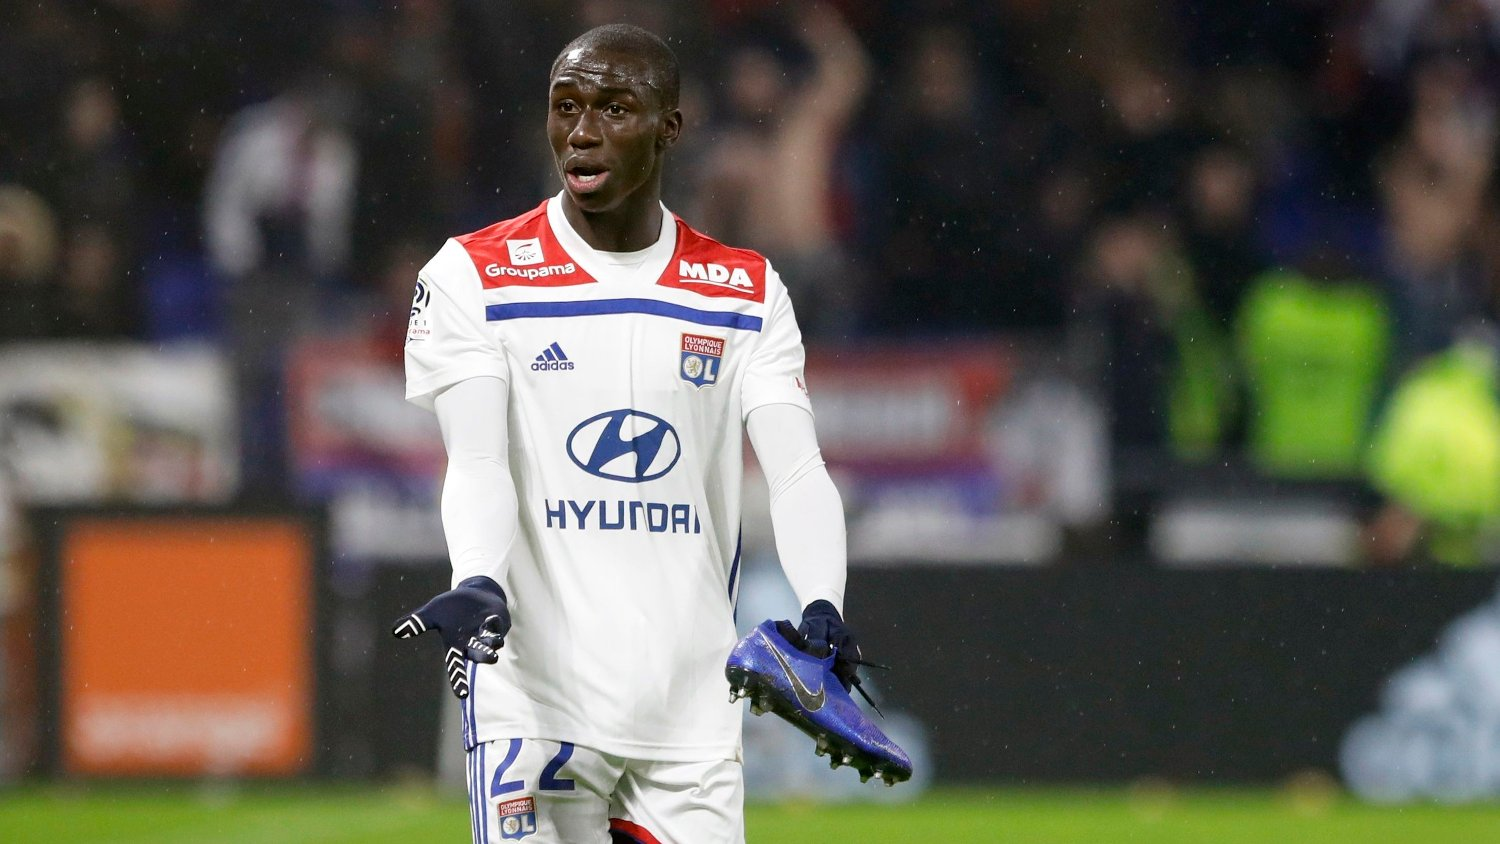 HAR SIGNERT: Ferland Mendy er klar for Real Madrid.